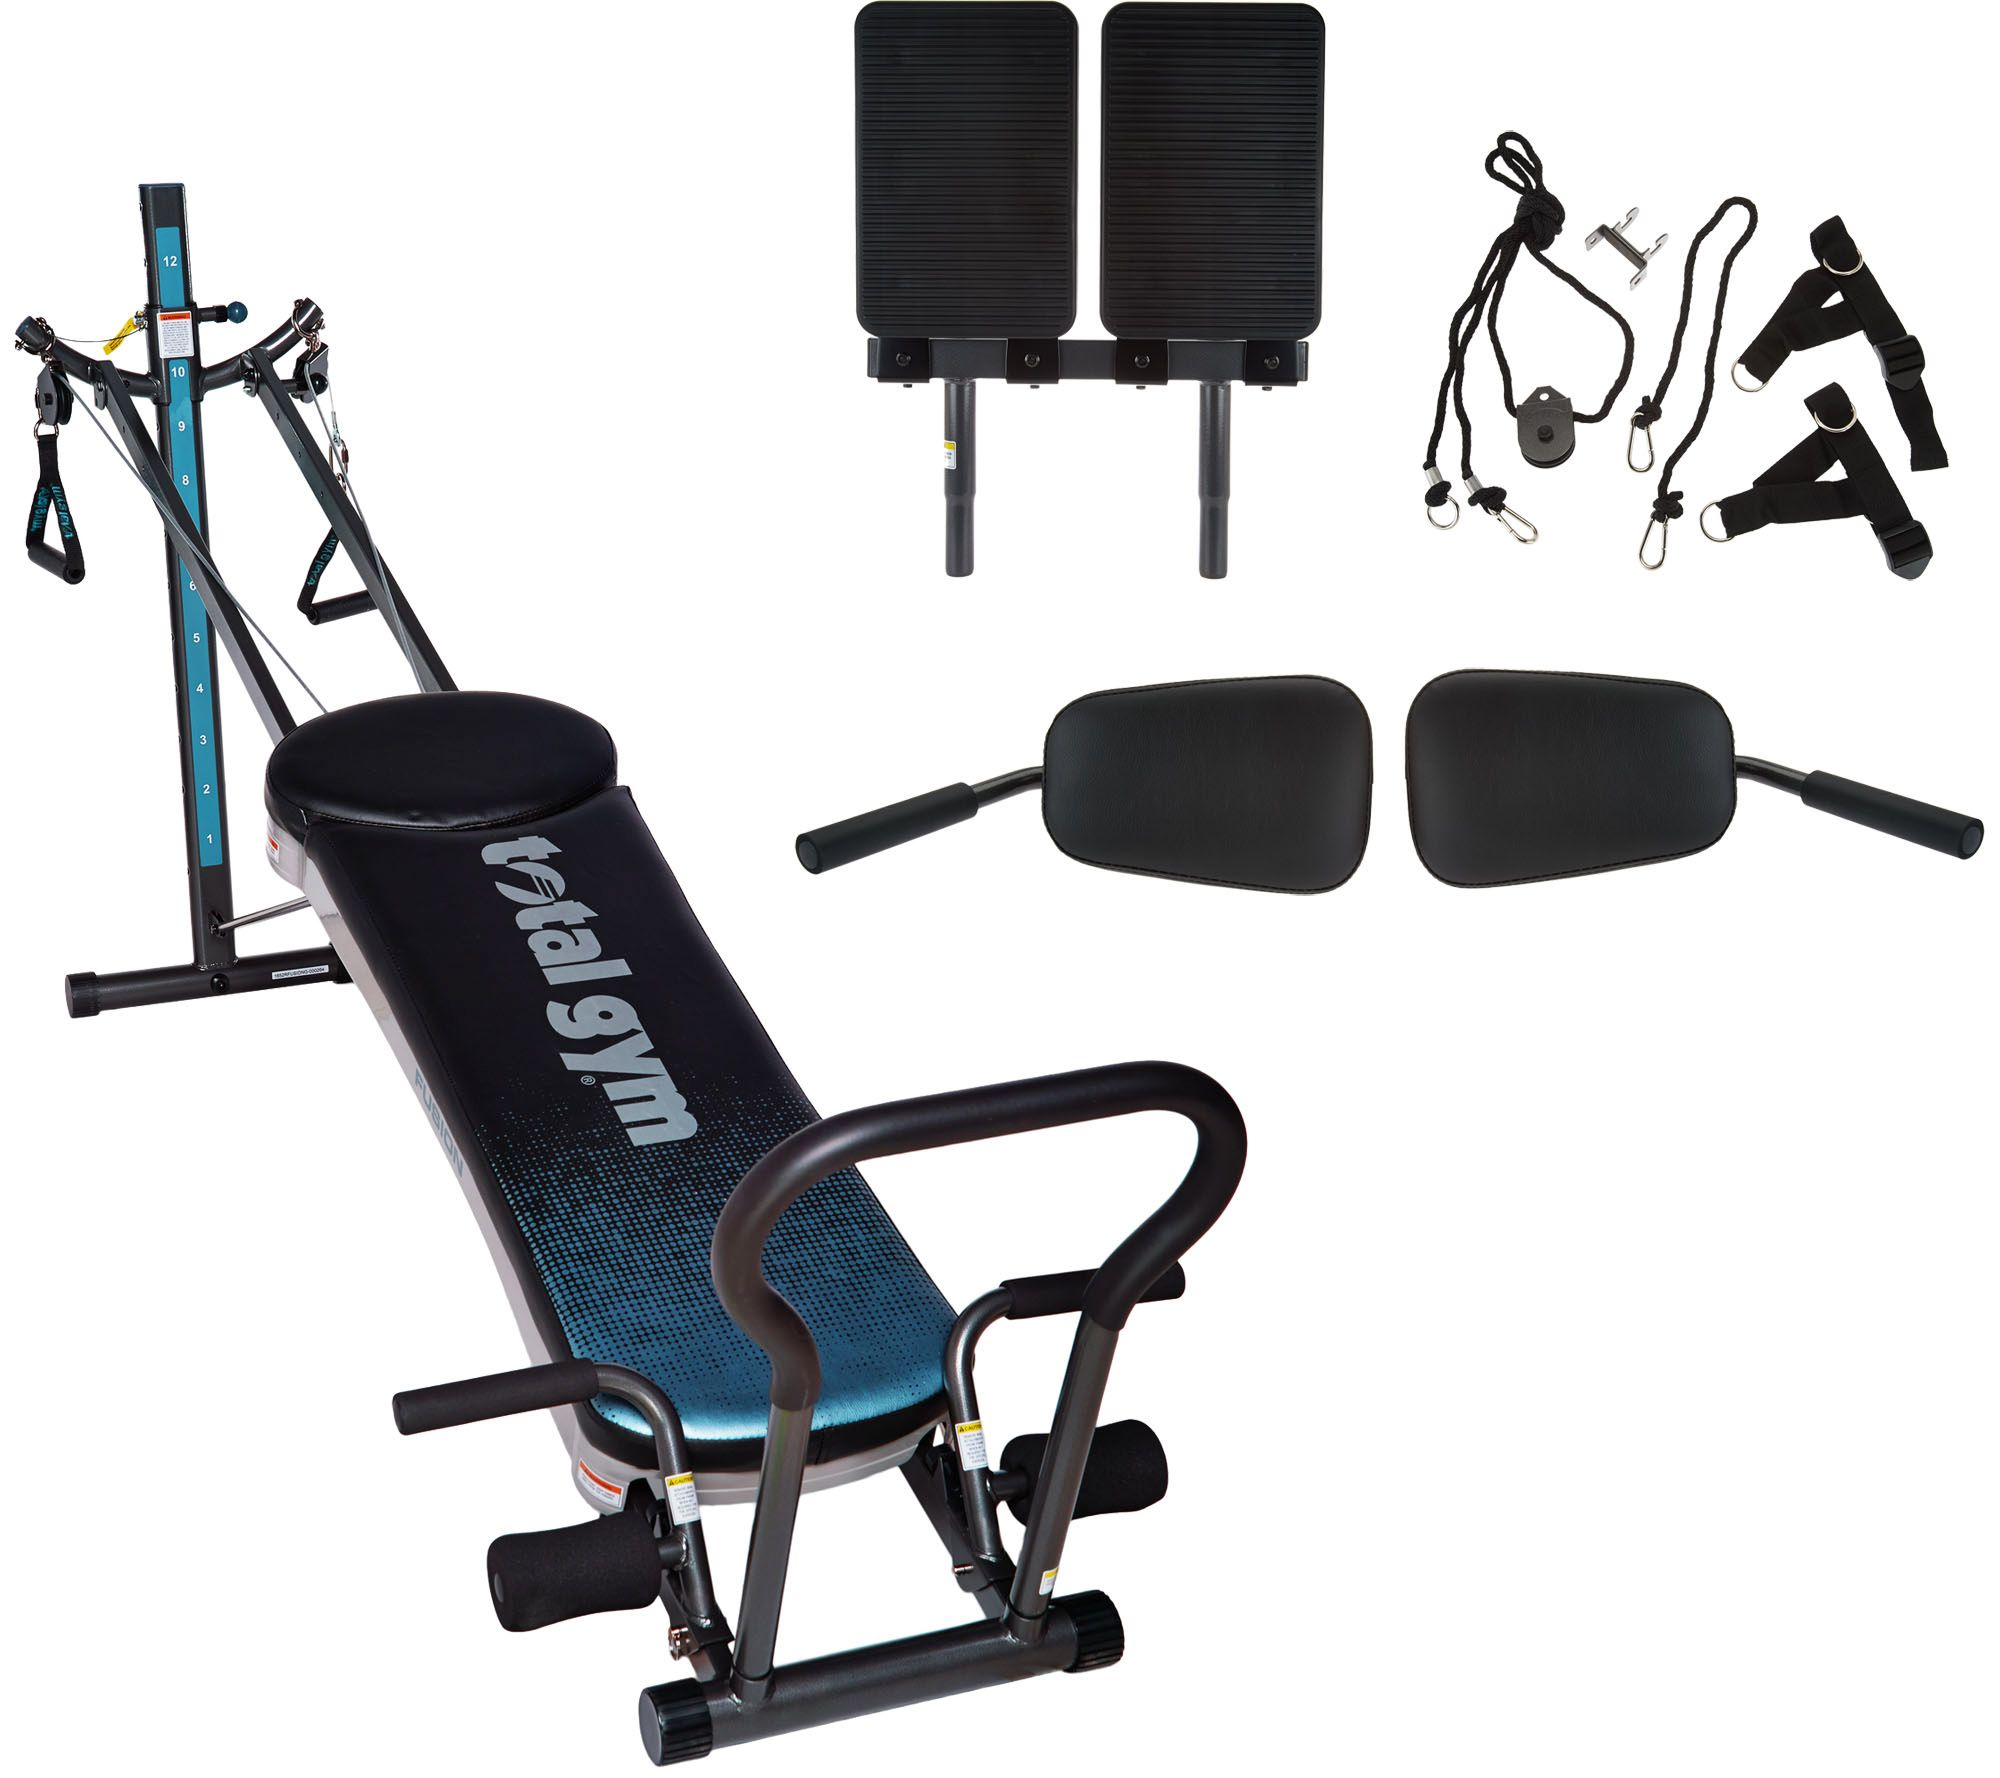 Fitness Equipment  Health  Fitness  QVCcom - Home gym equipment for sale